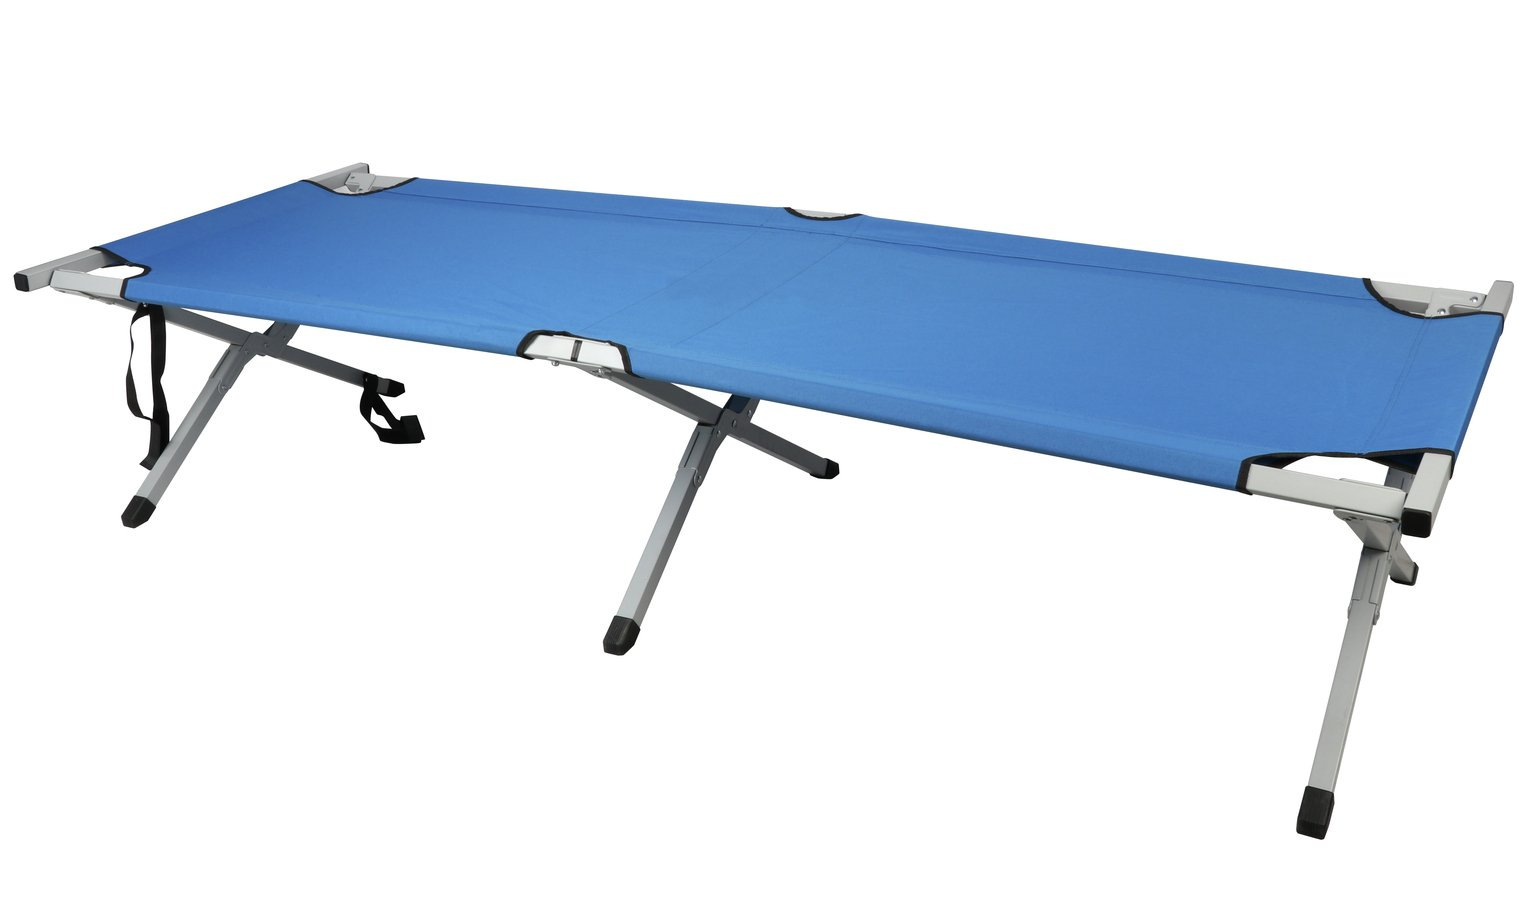 Folding Camping Bed - Single